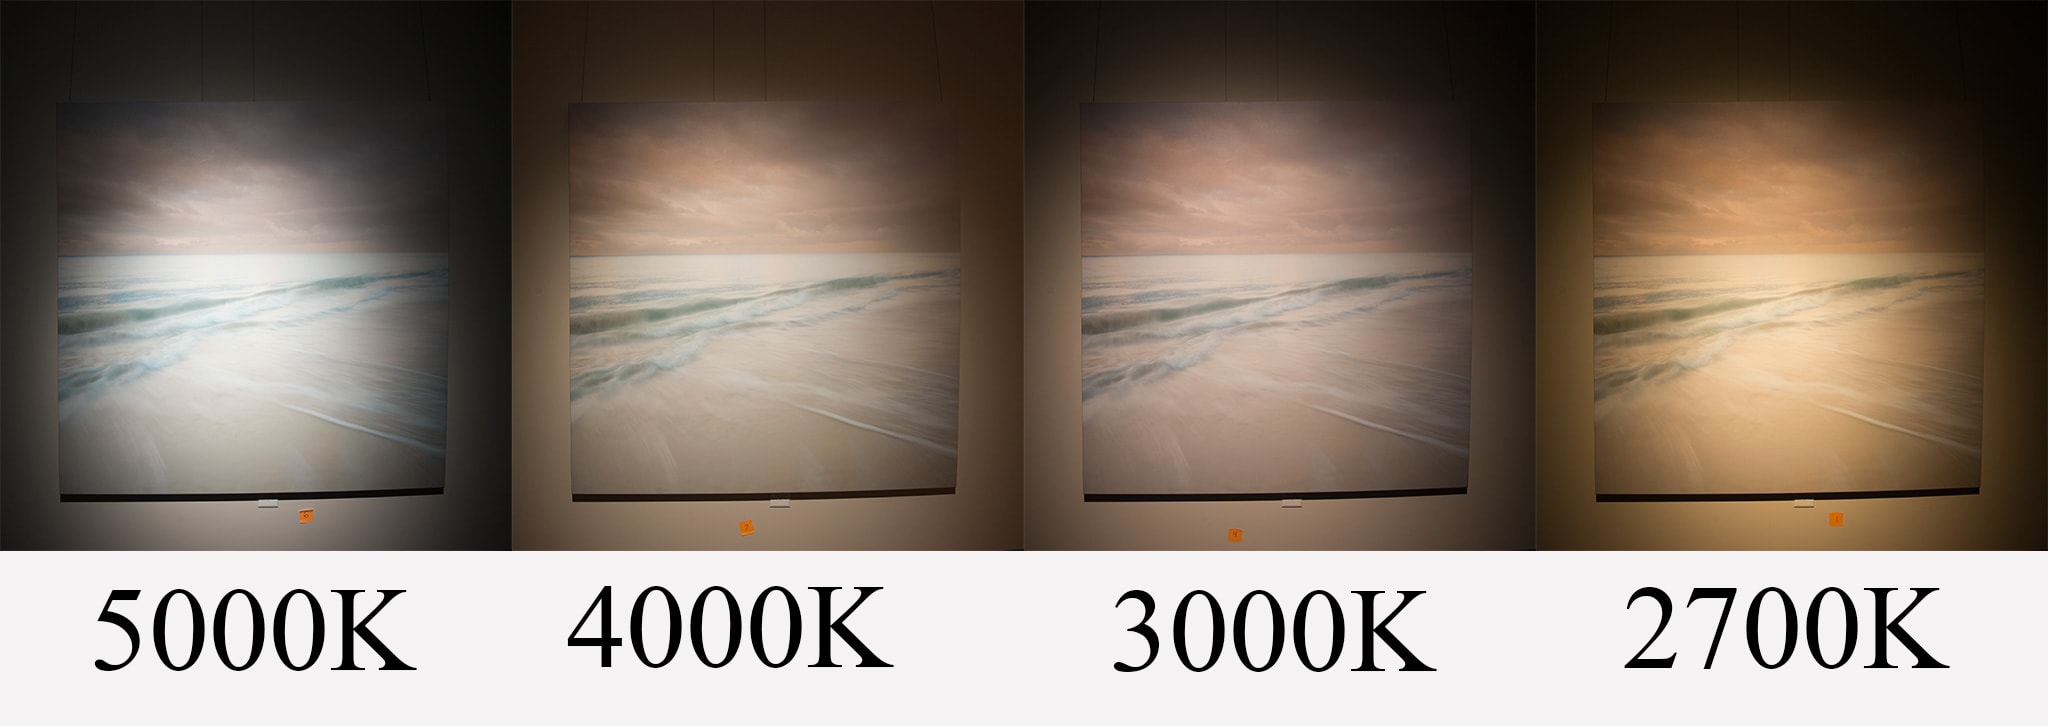 Experimenting with light temperature for wall art for Living room 2700k or 3000k